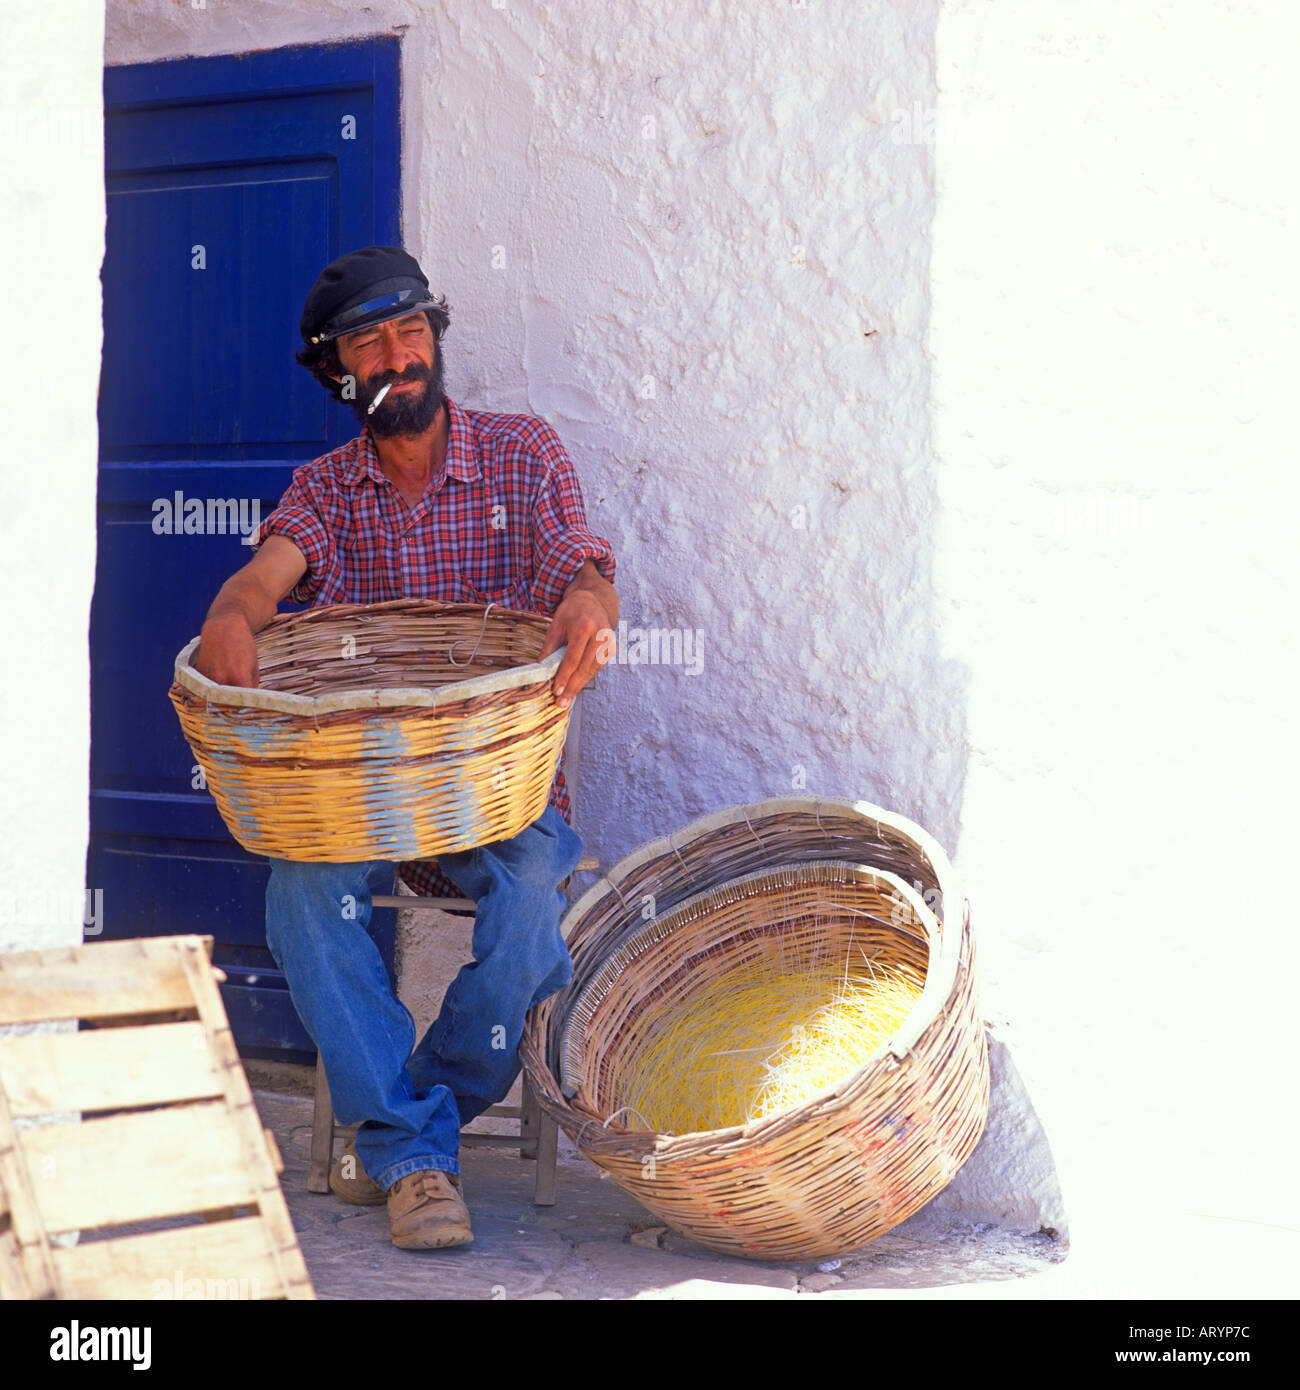 Page 2Greek Baskets High Resolution Stock Photography and